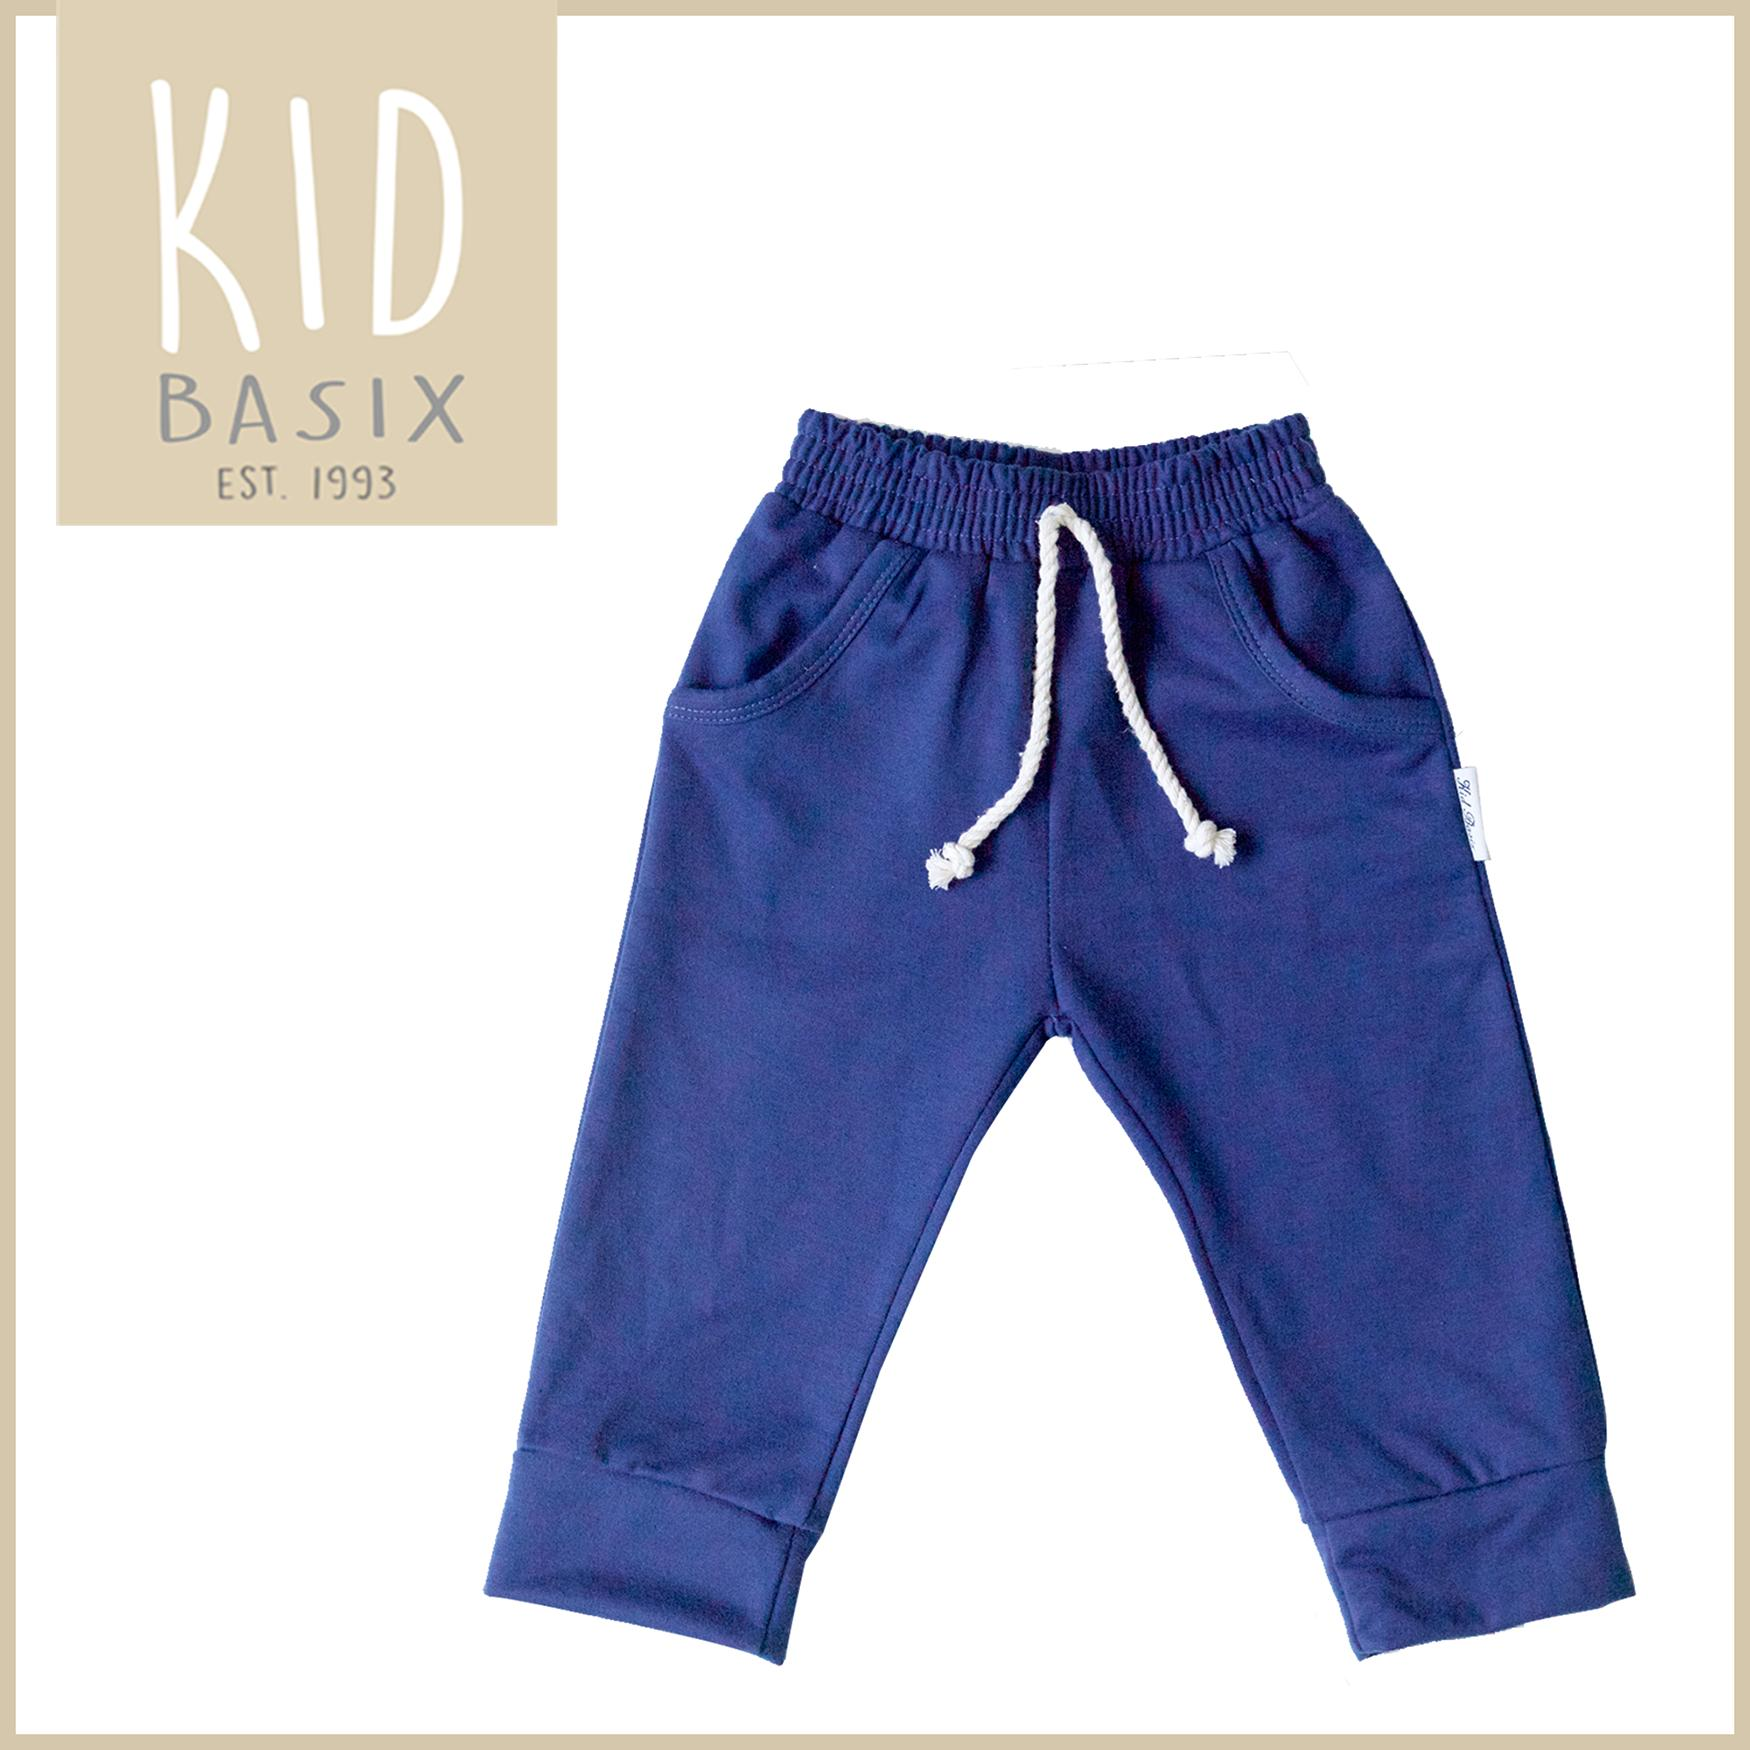 ff95ccf01 Boys Pants for sale - Baby Pants for Boys online brands, prices ...